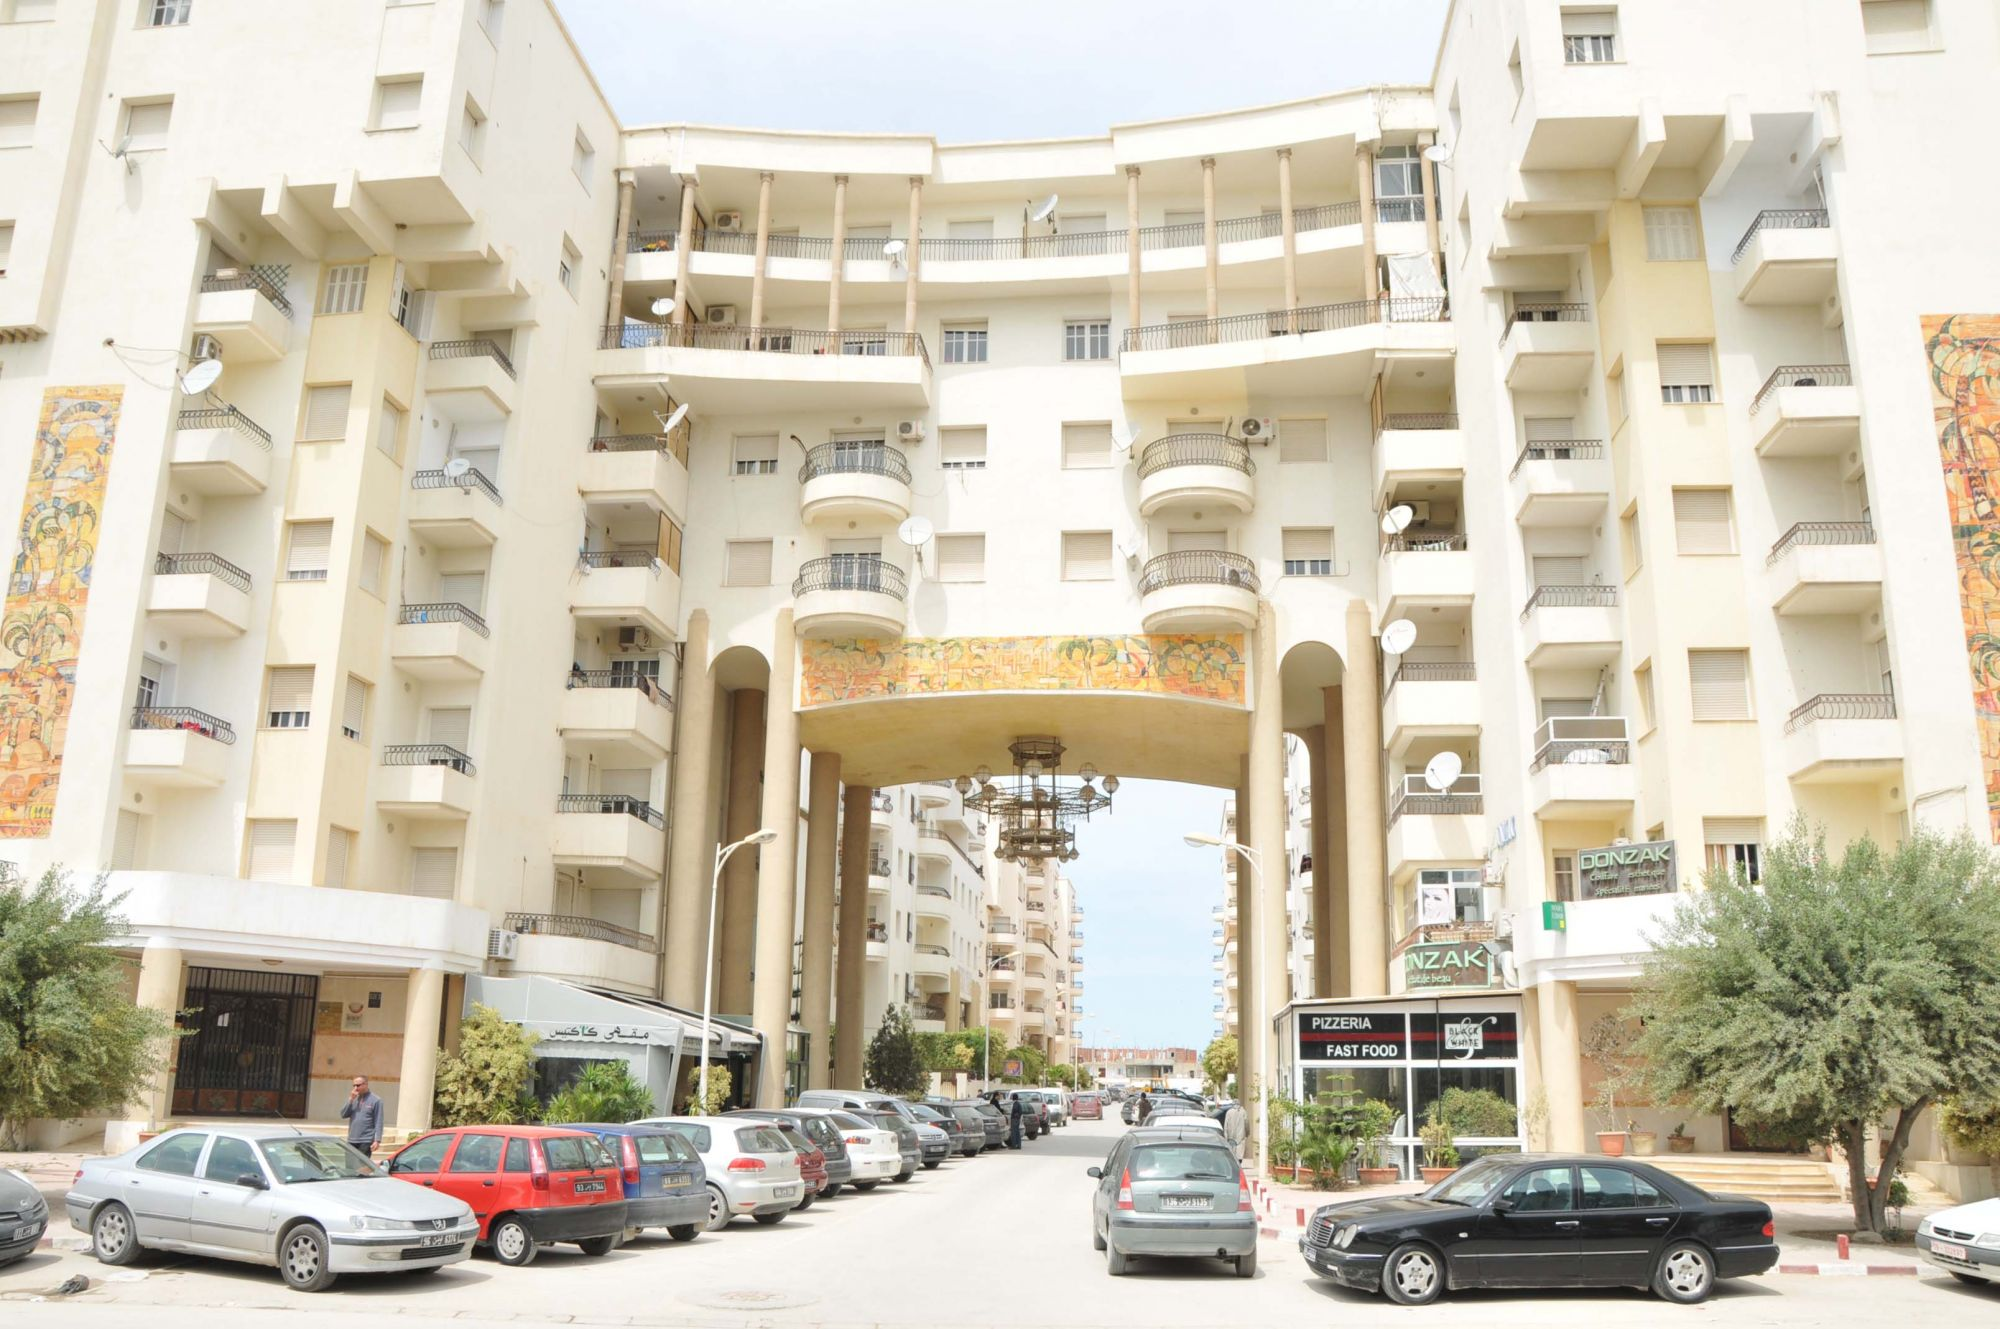 A vendre un joli appartement a tunis ainzaghouan diair for Agence immobiliere zaghouan